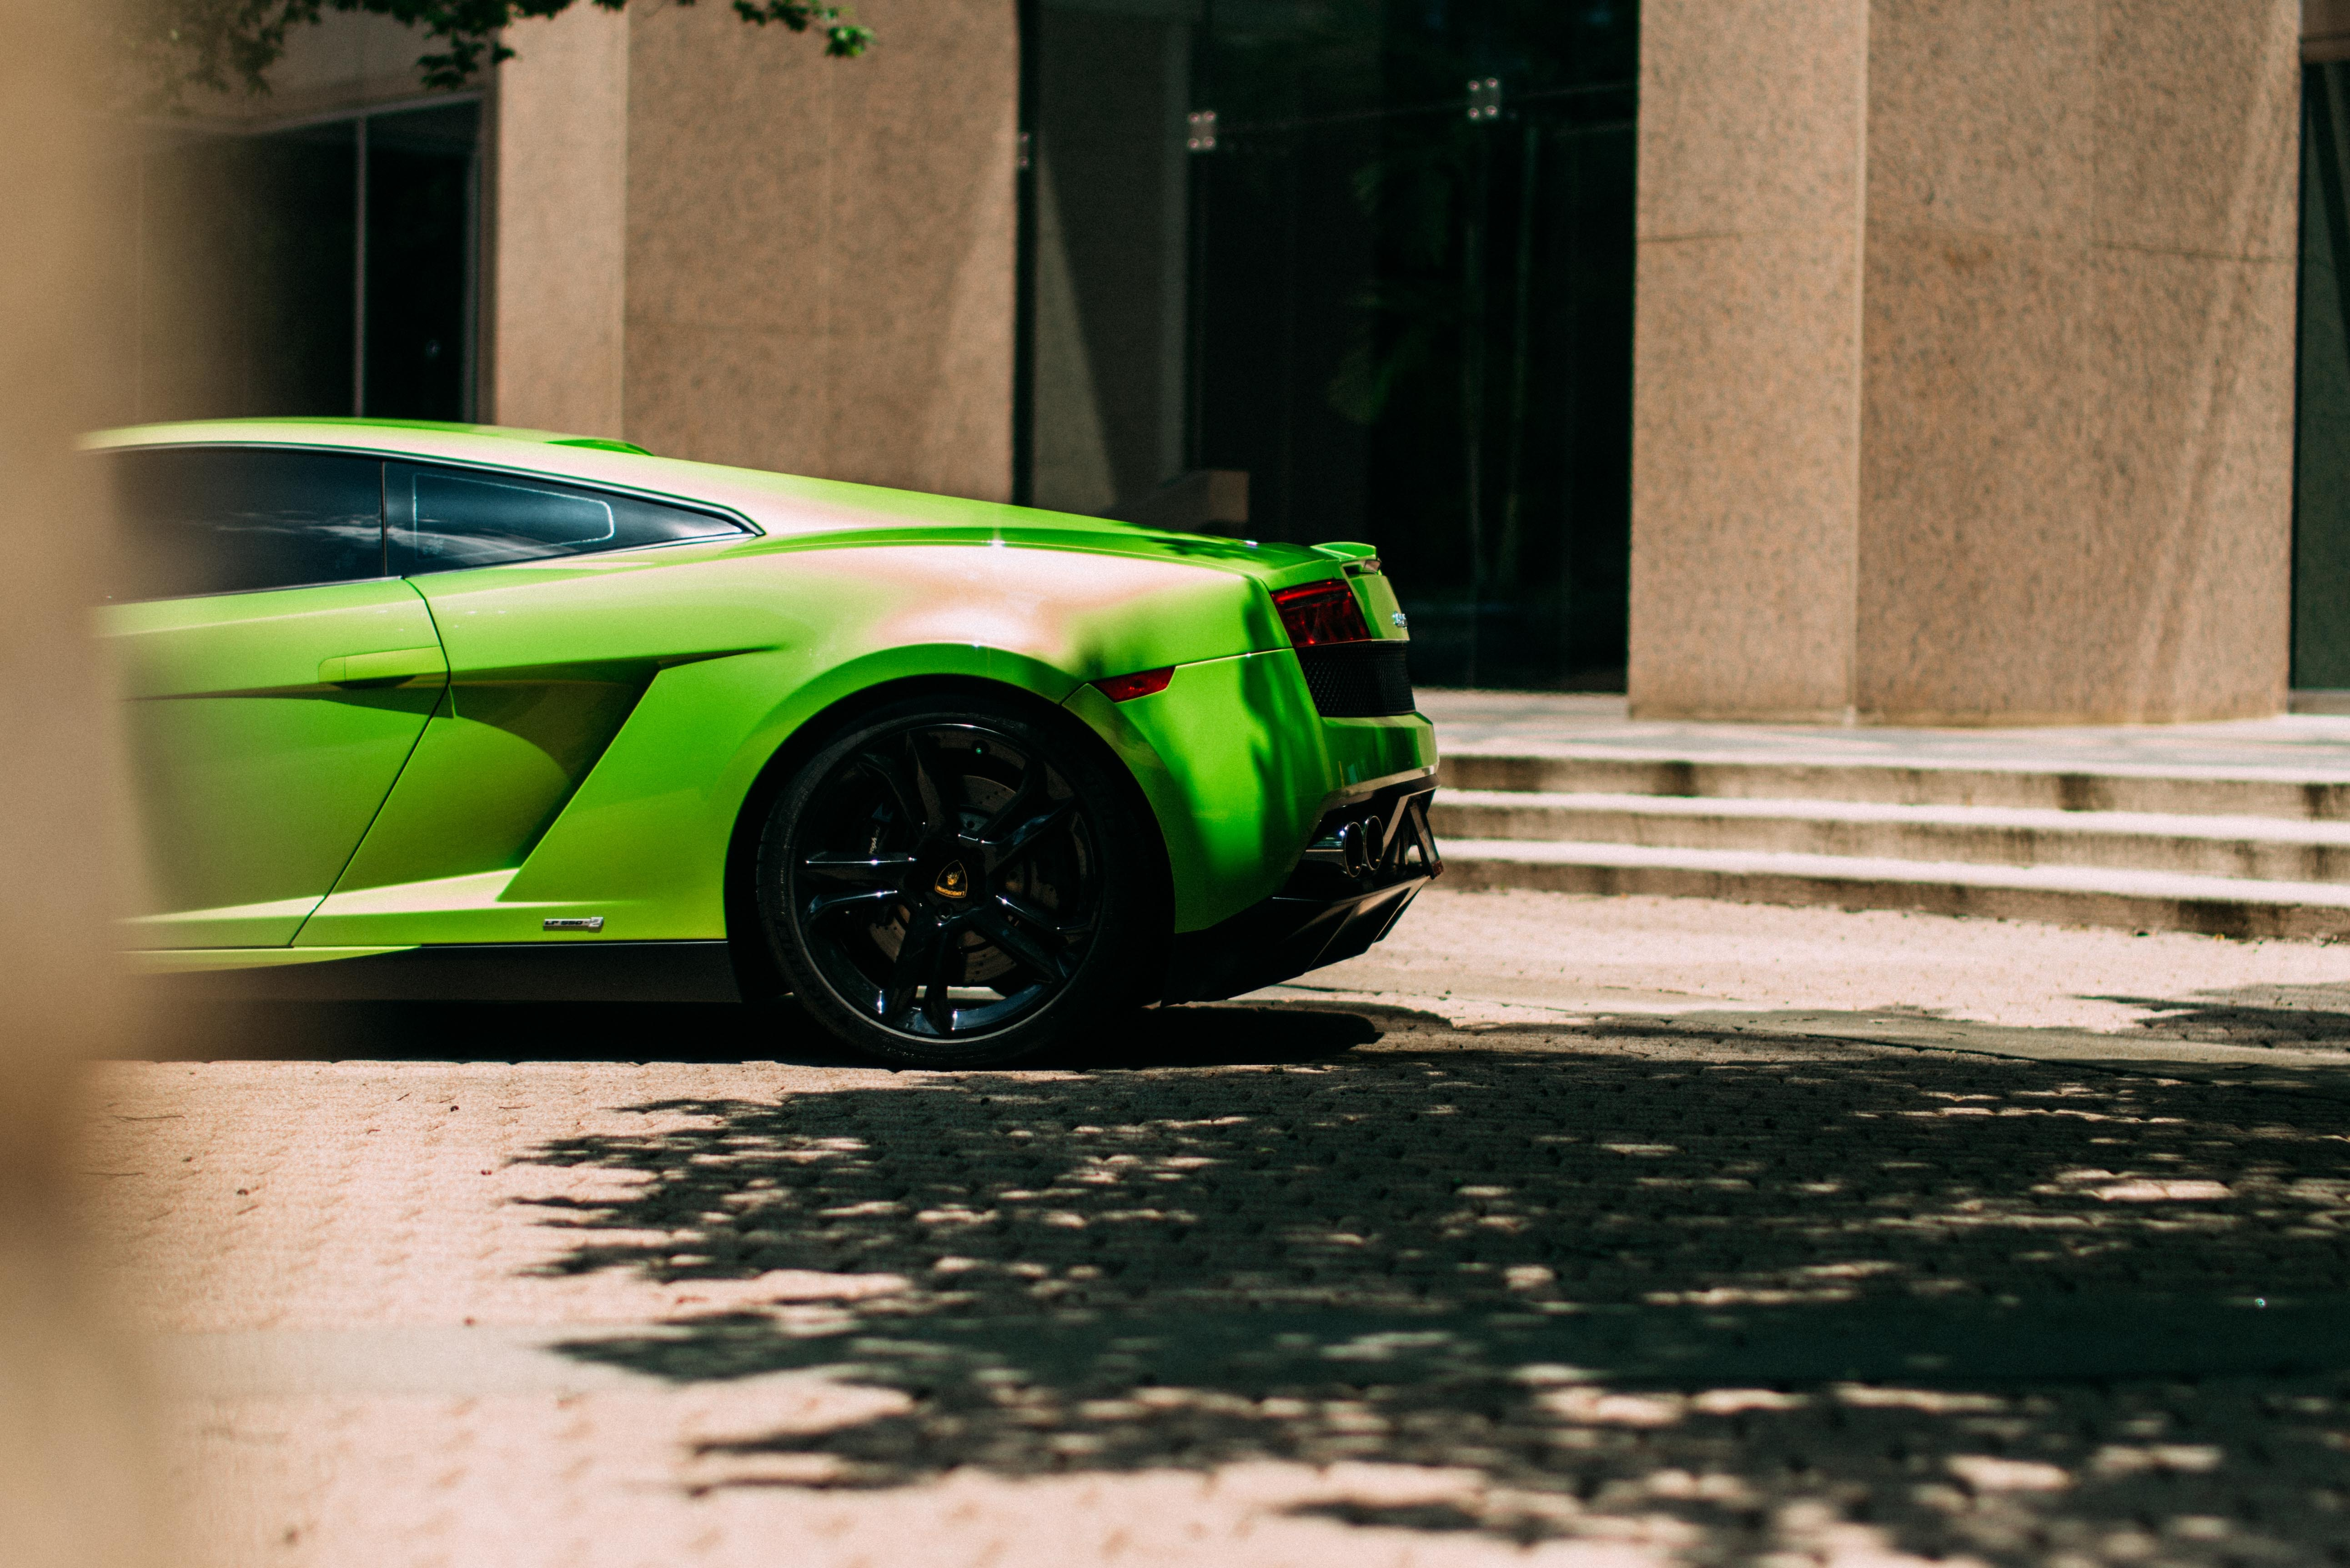 green sports coupe parked at the road near the building